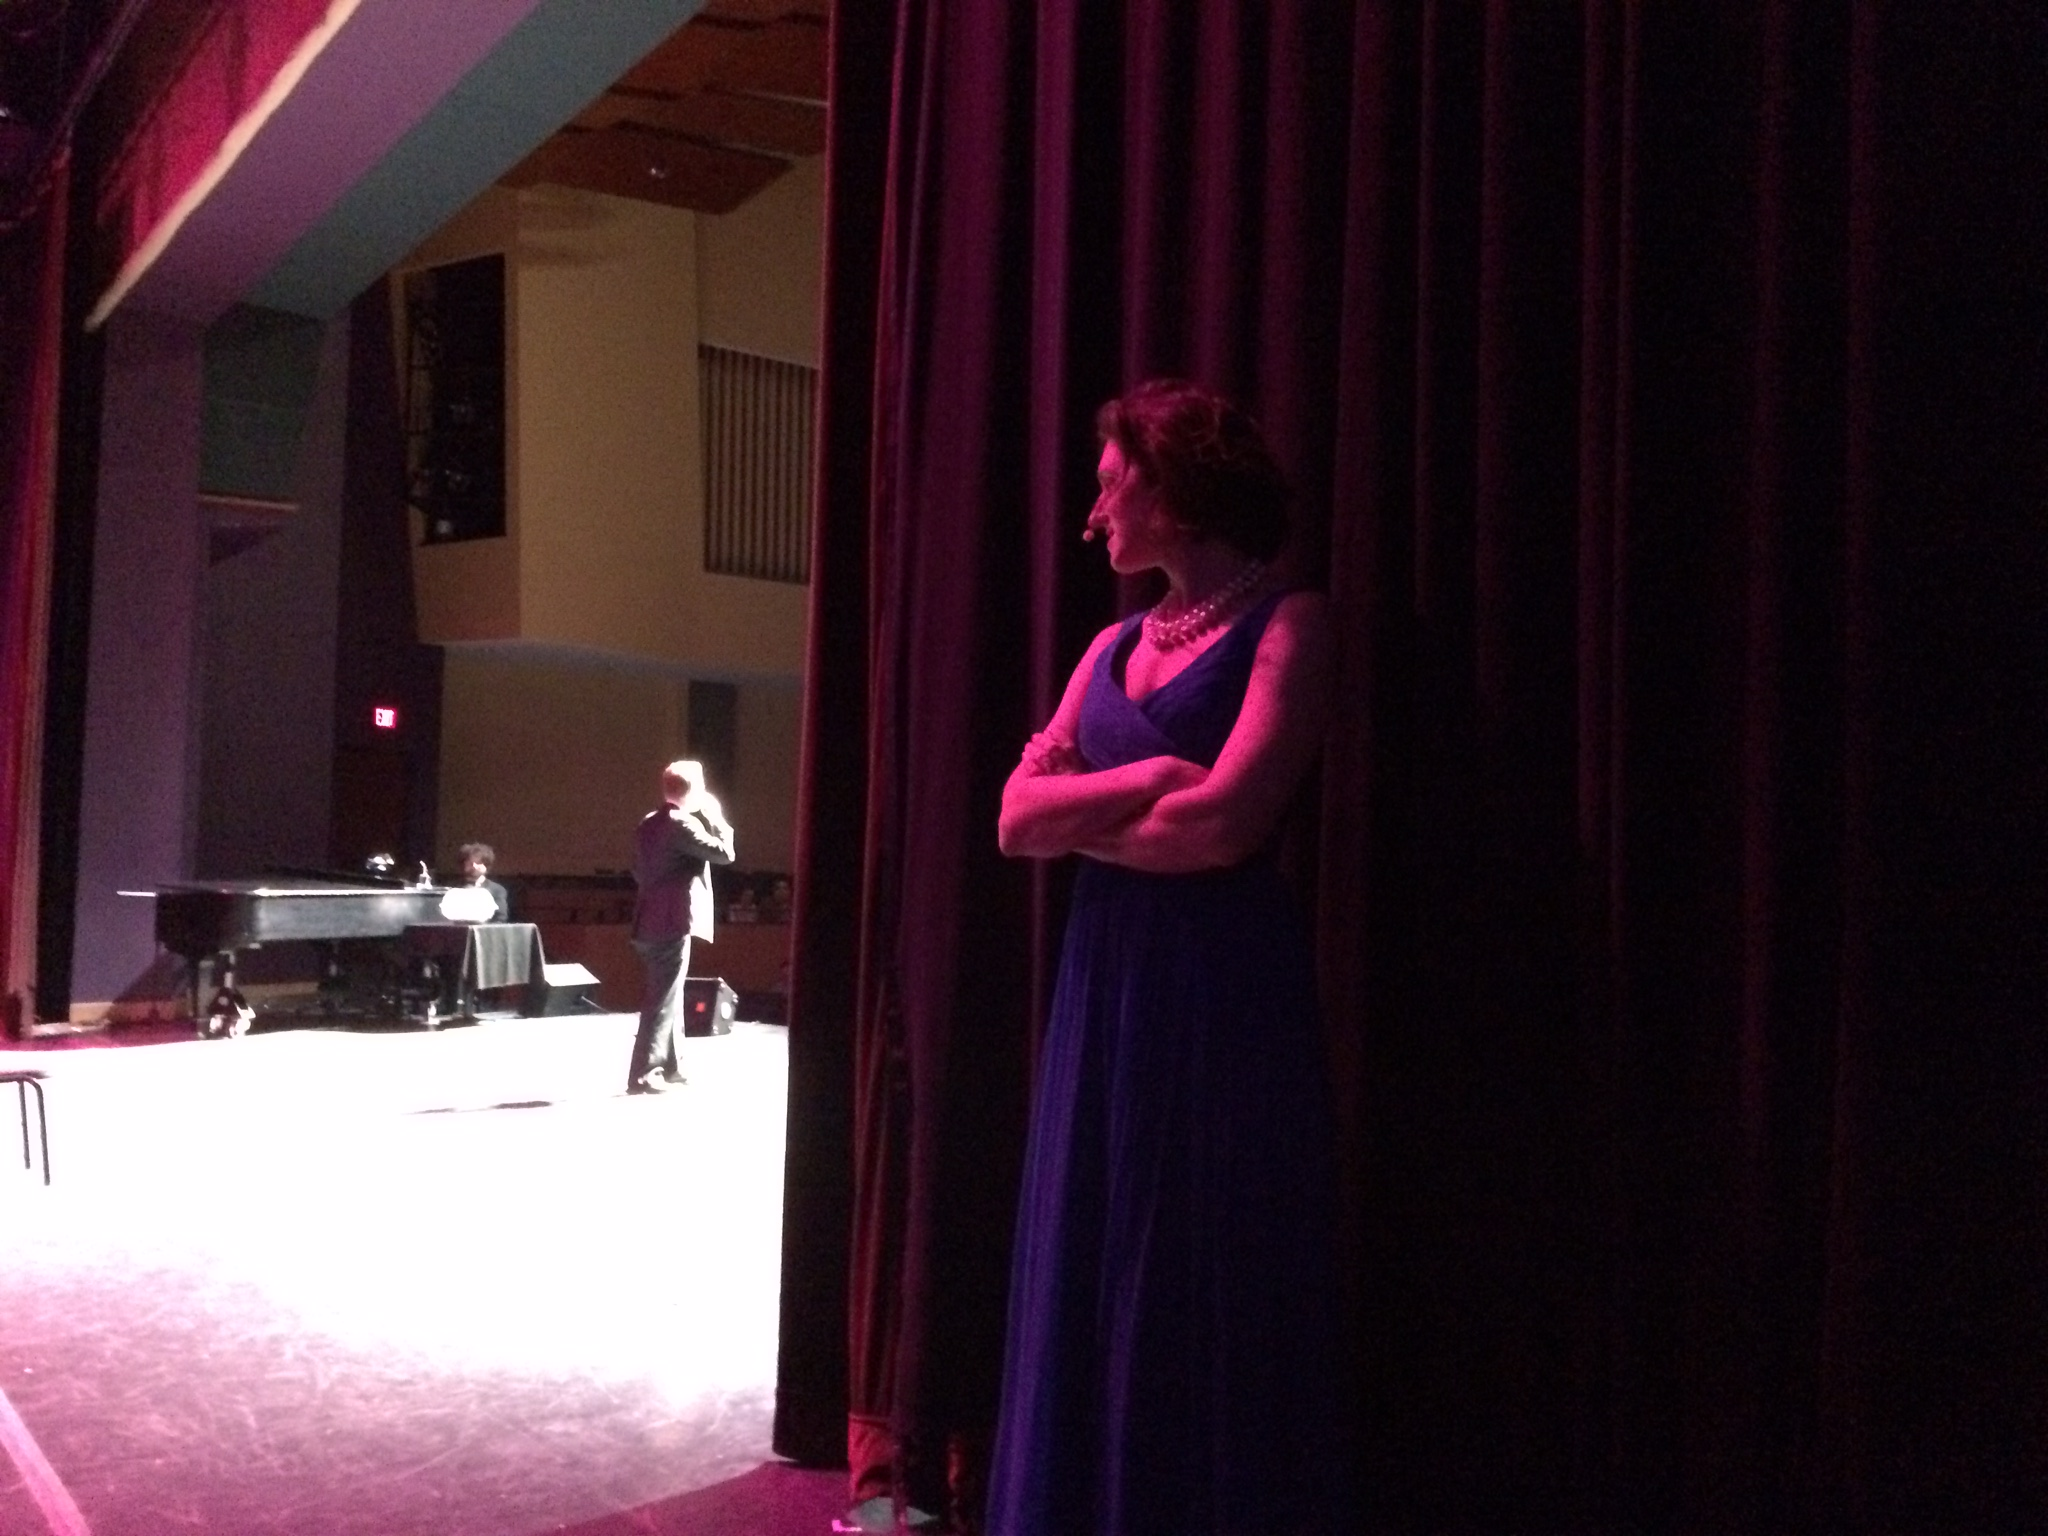 In the wings.